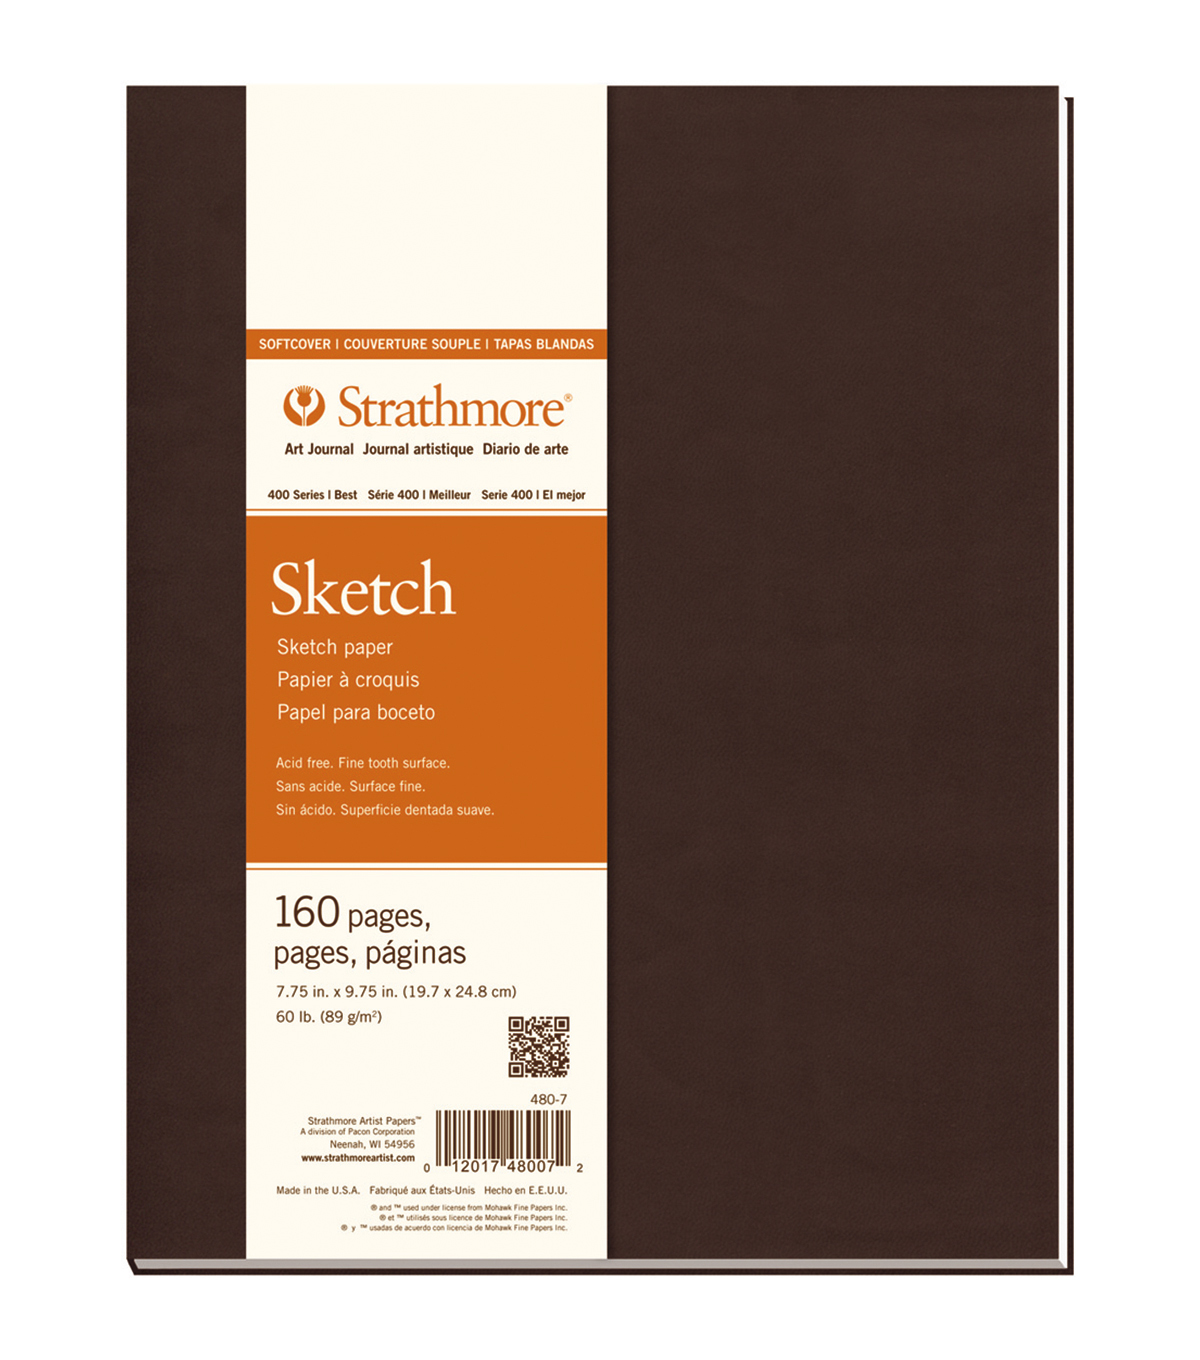 Strathmore Soft Cover Sketch Journal Book With 160 Pages 7.75\u0022x9.75\u0022